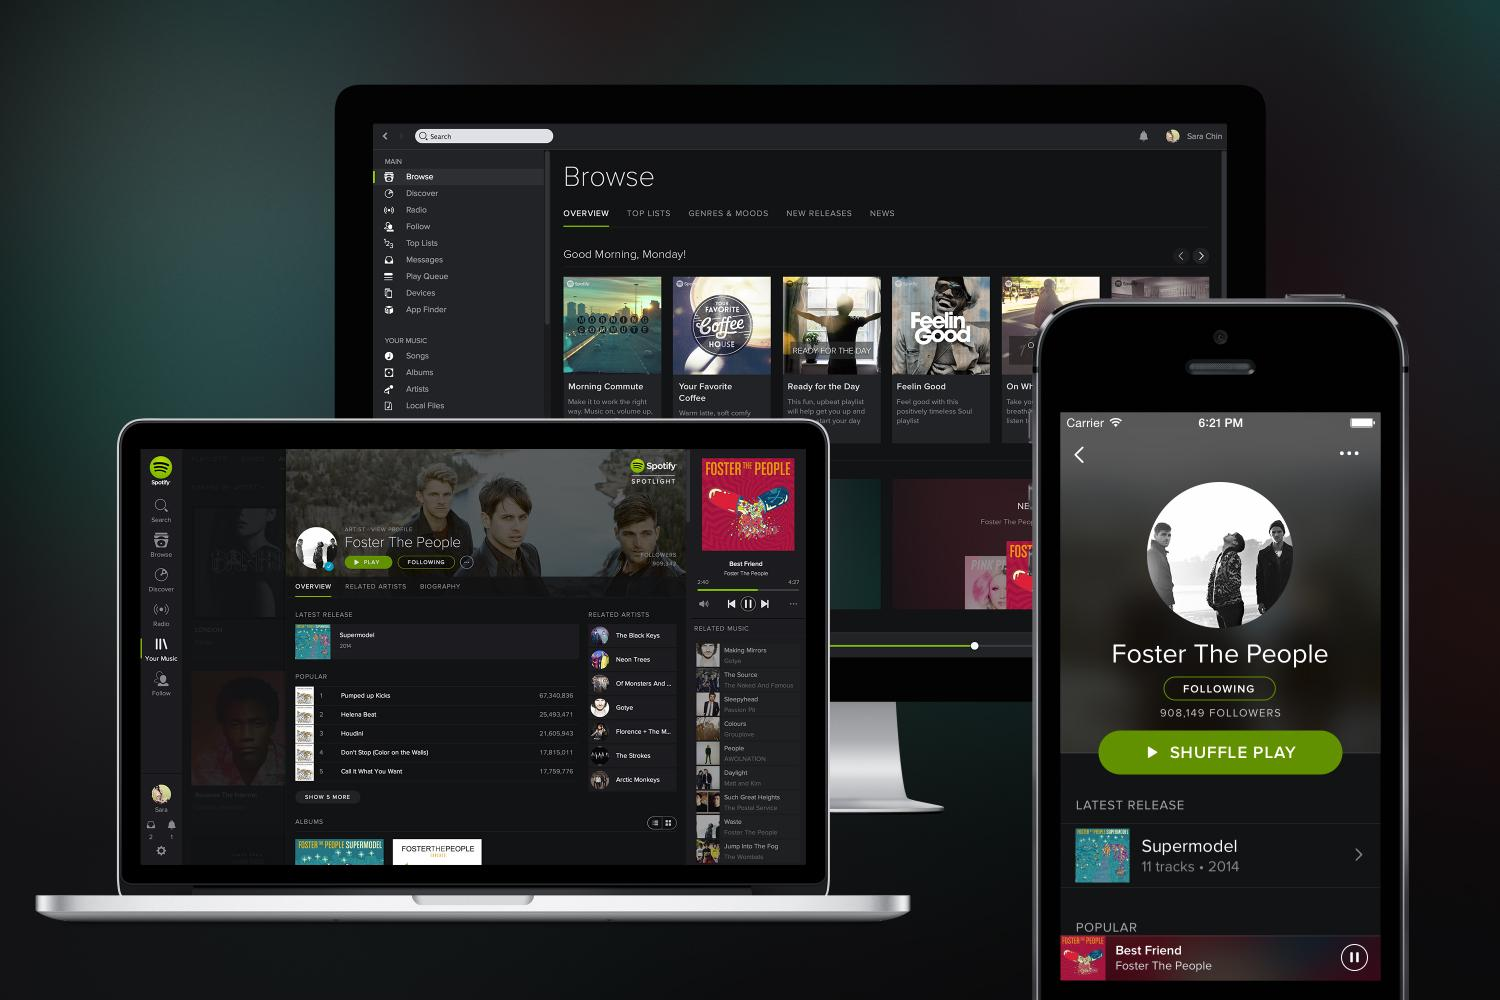 spotify images